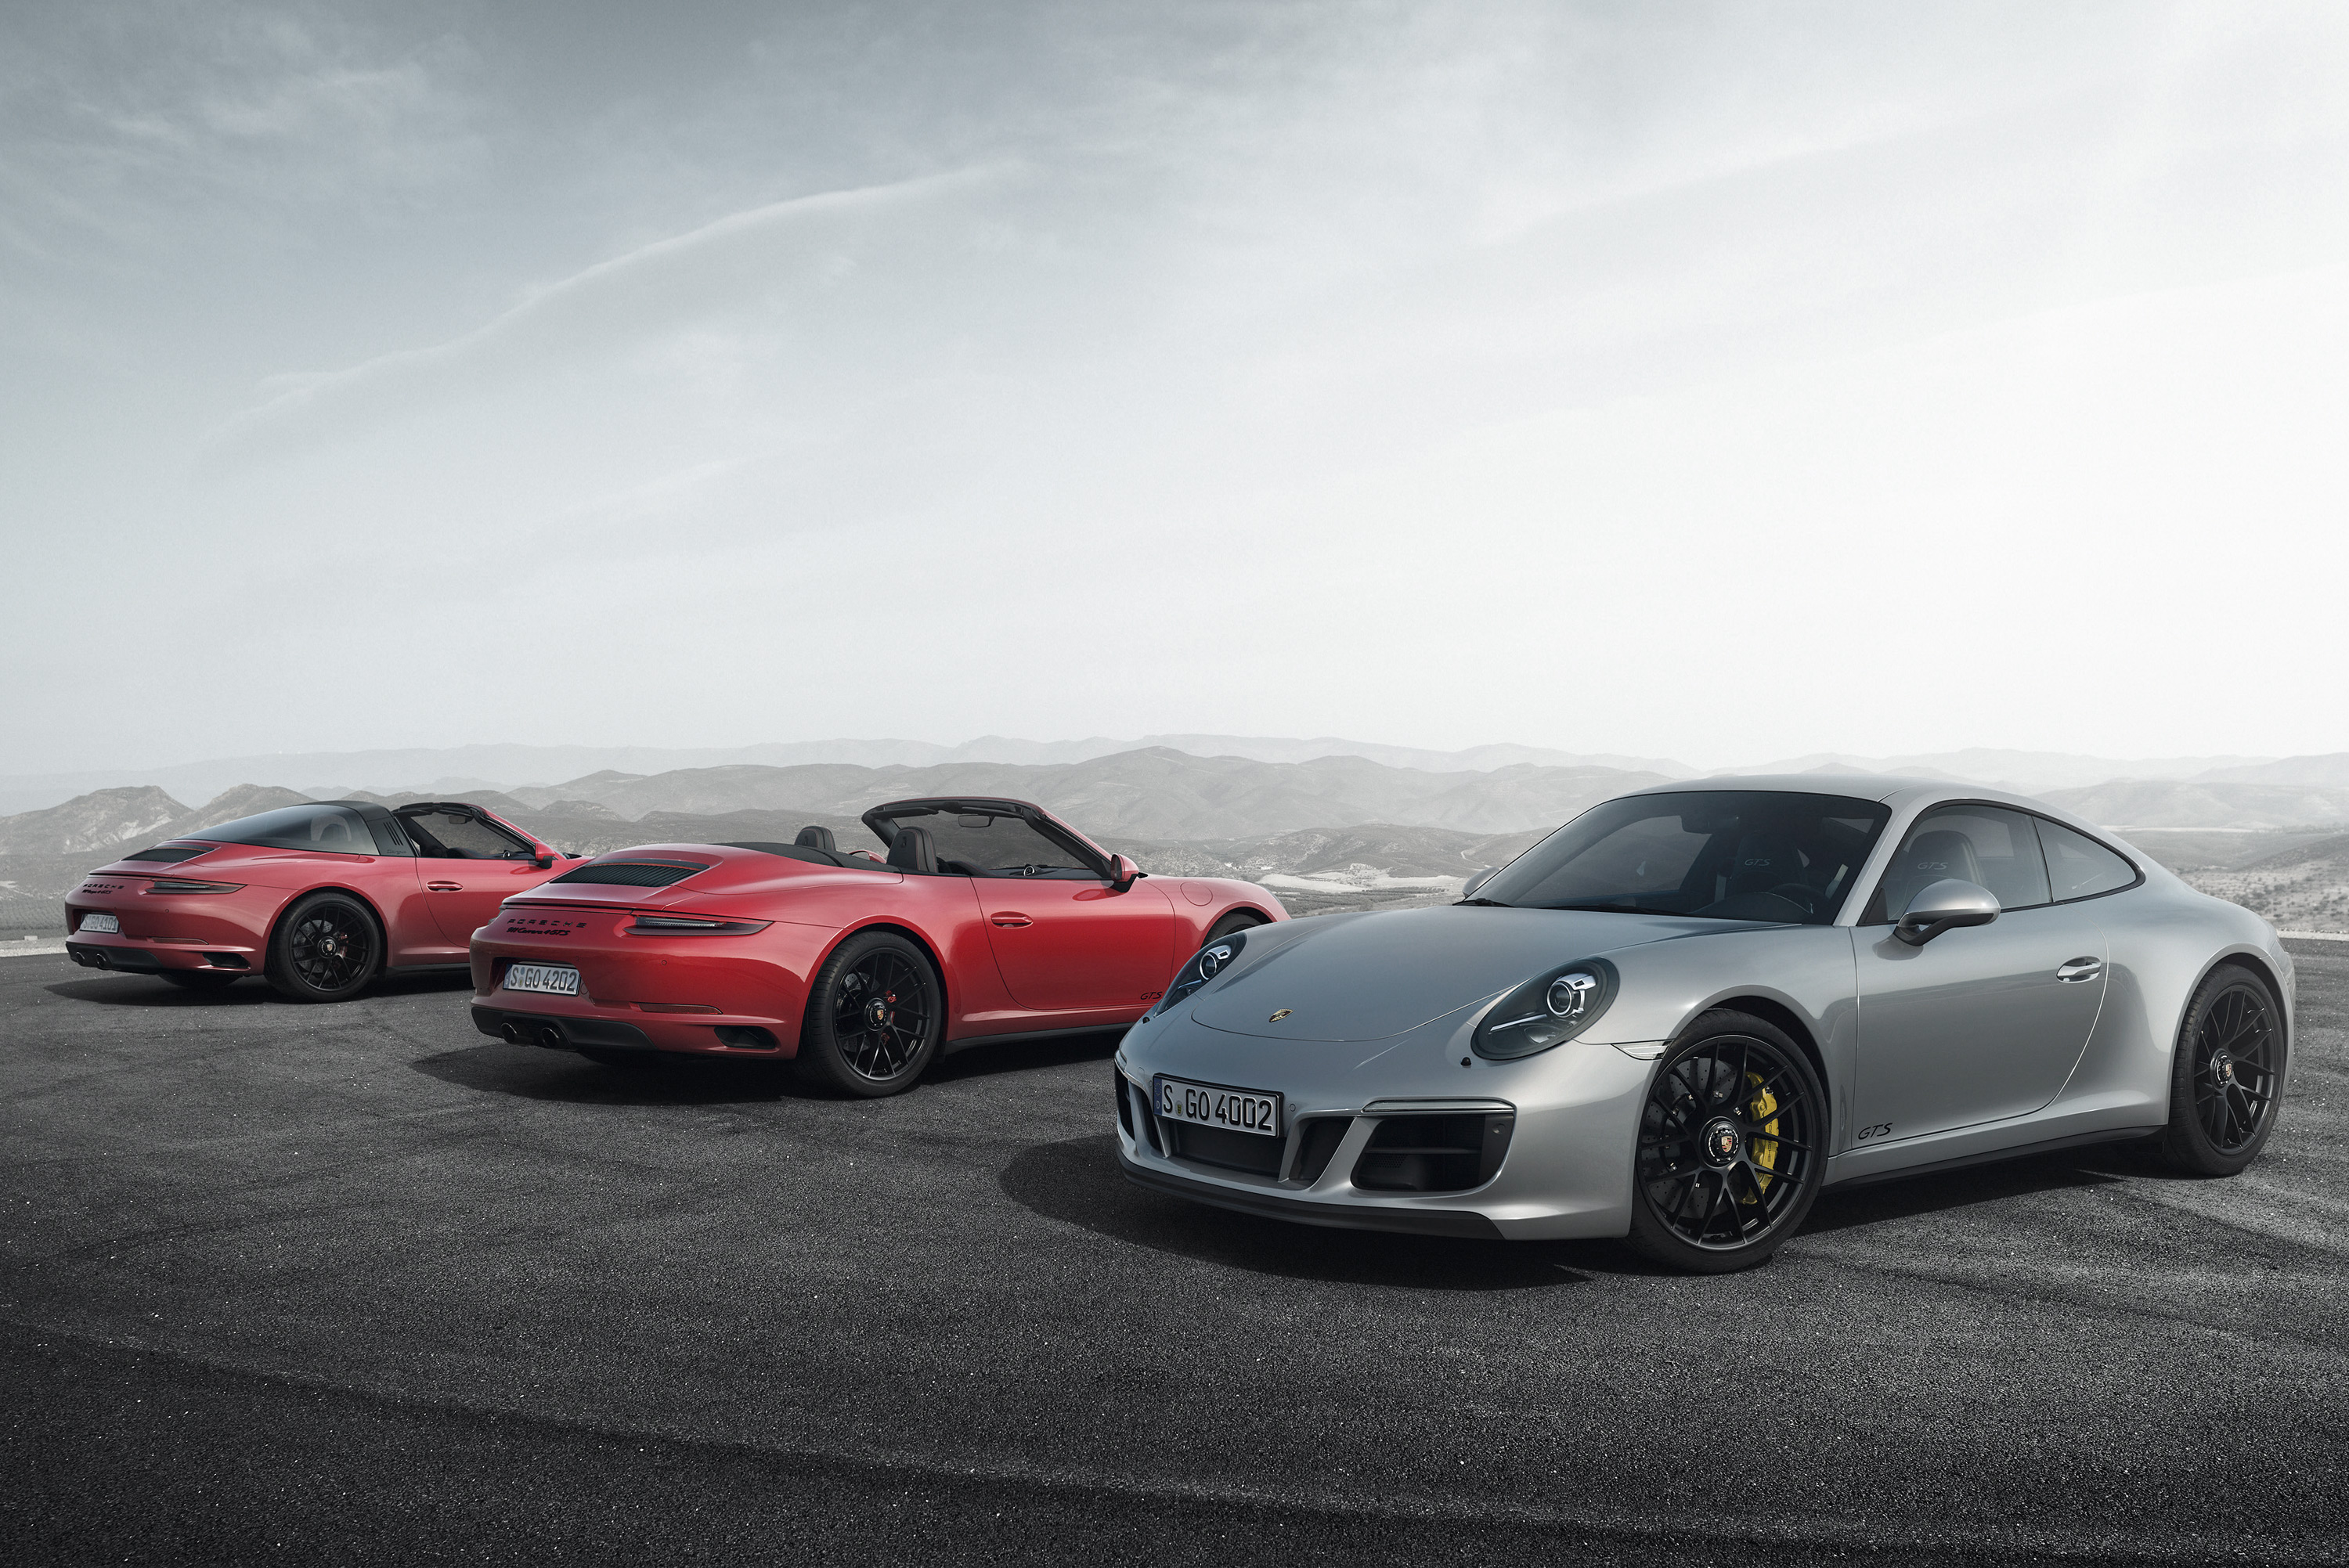 <p>Starting with the 911 Carrera GTS, with rear wheel-drive, and the 4 GTS (both available in coupé or cabriolet configuration), the new range is spearheaded by the stunning 911 Targa 4 GTS.</p>